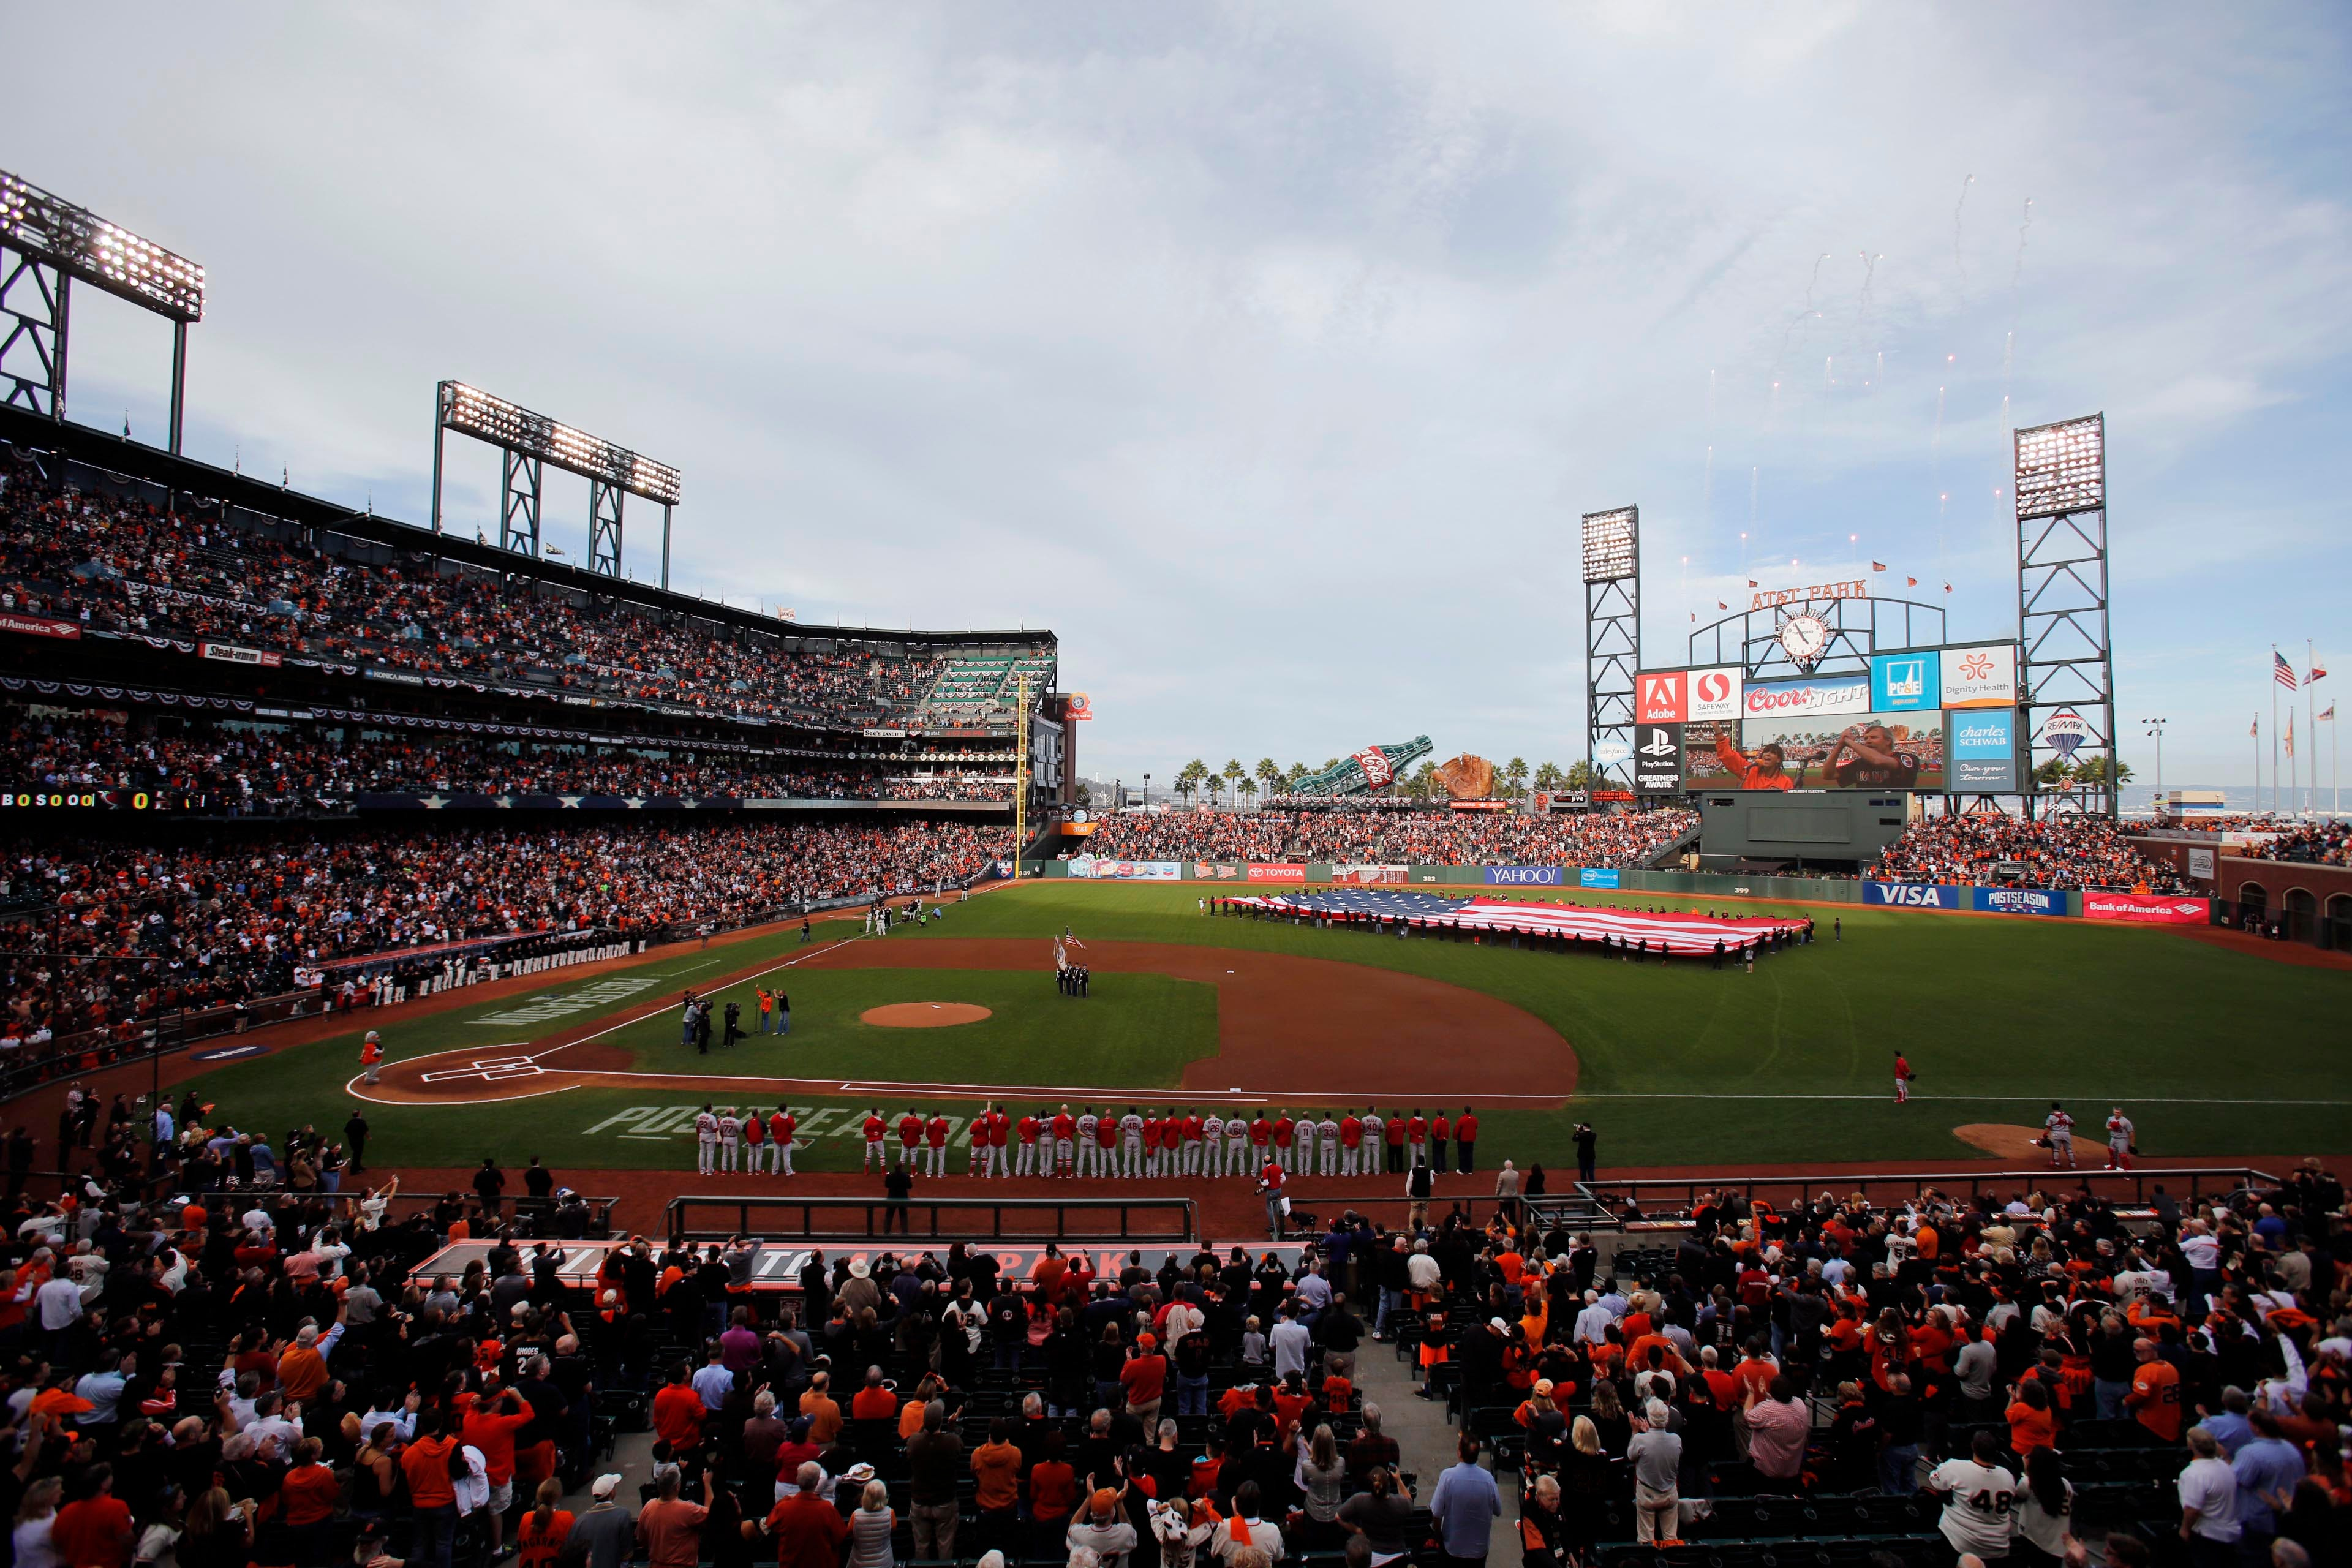 Raiders in talks with San Francisco Giants over sharing stadium in 2019, per report